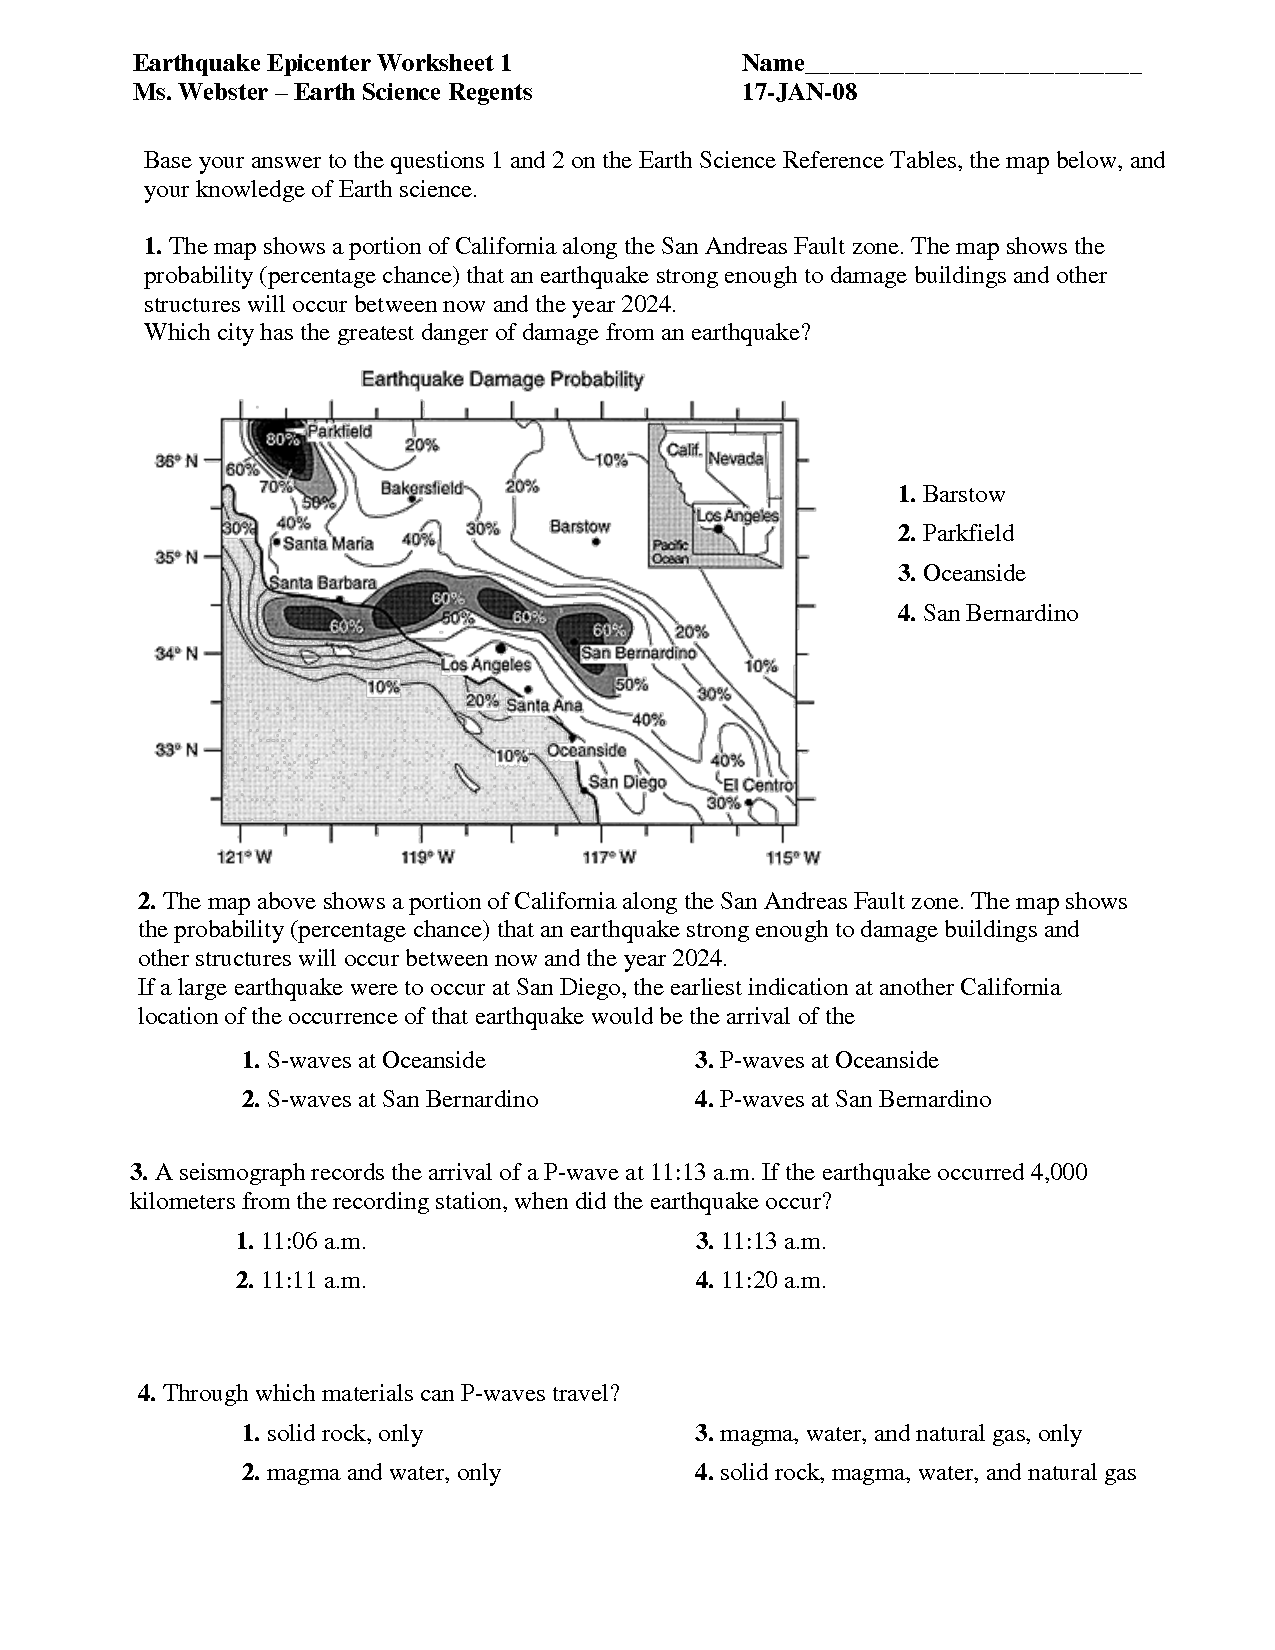 Earthquake Worksheets For Middle School